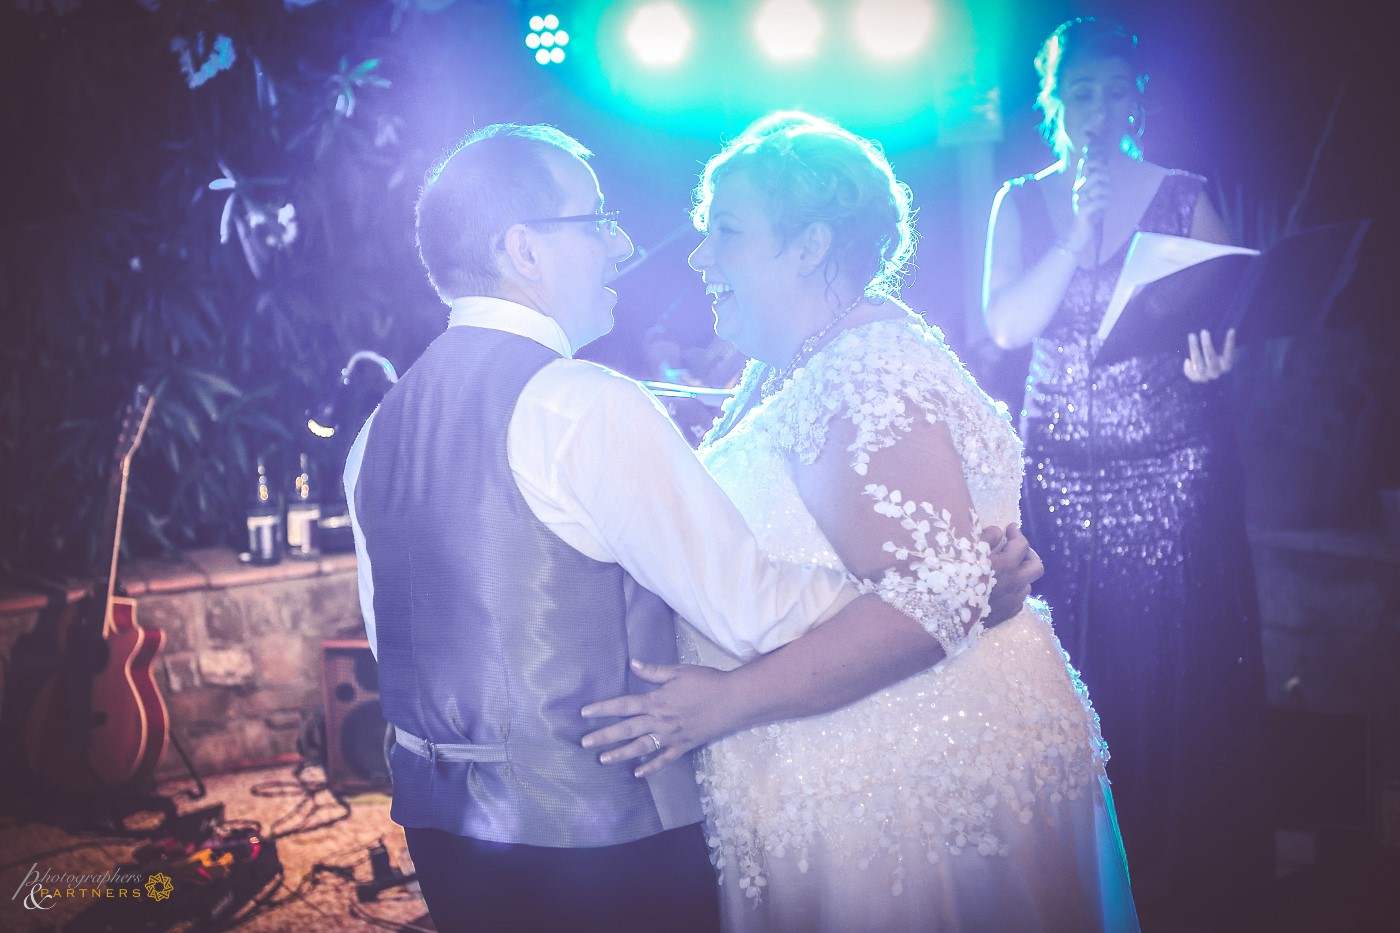 First dance with a special song.